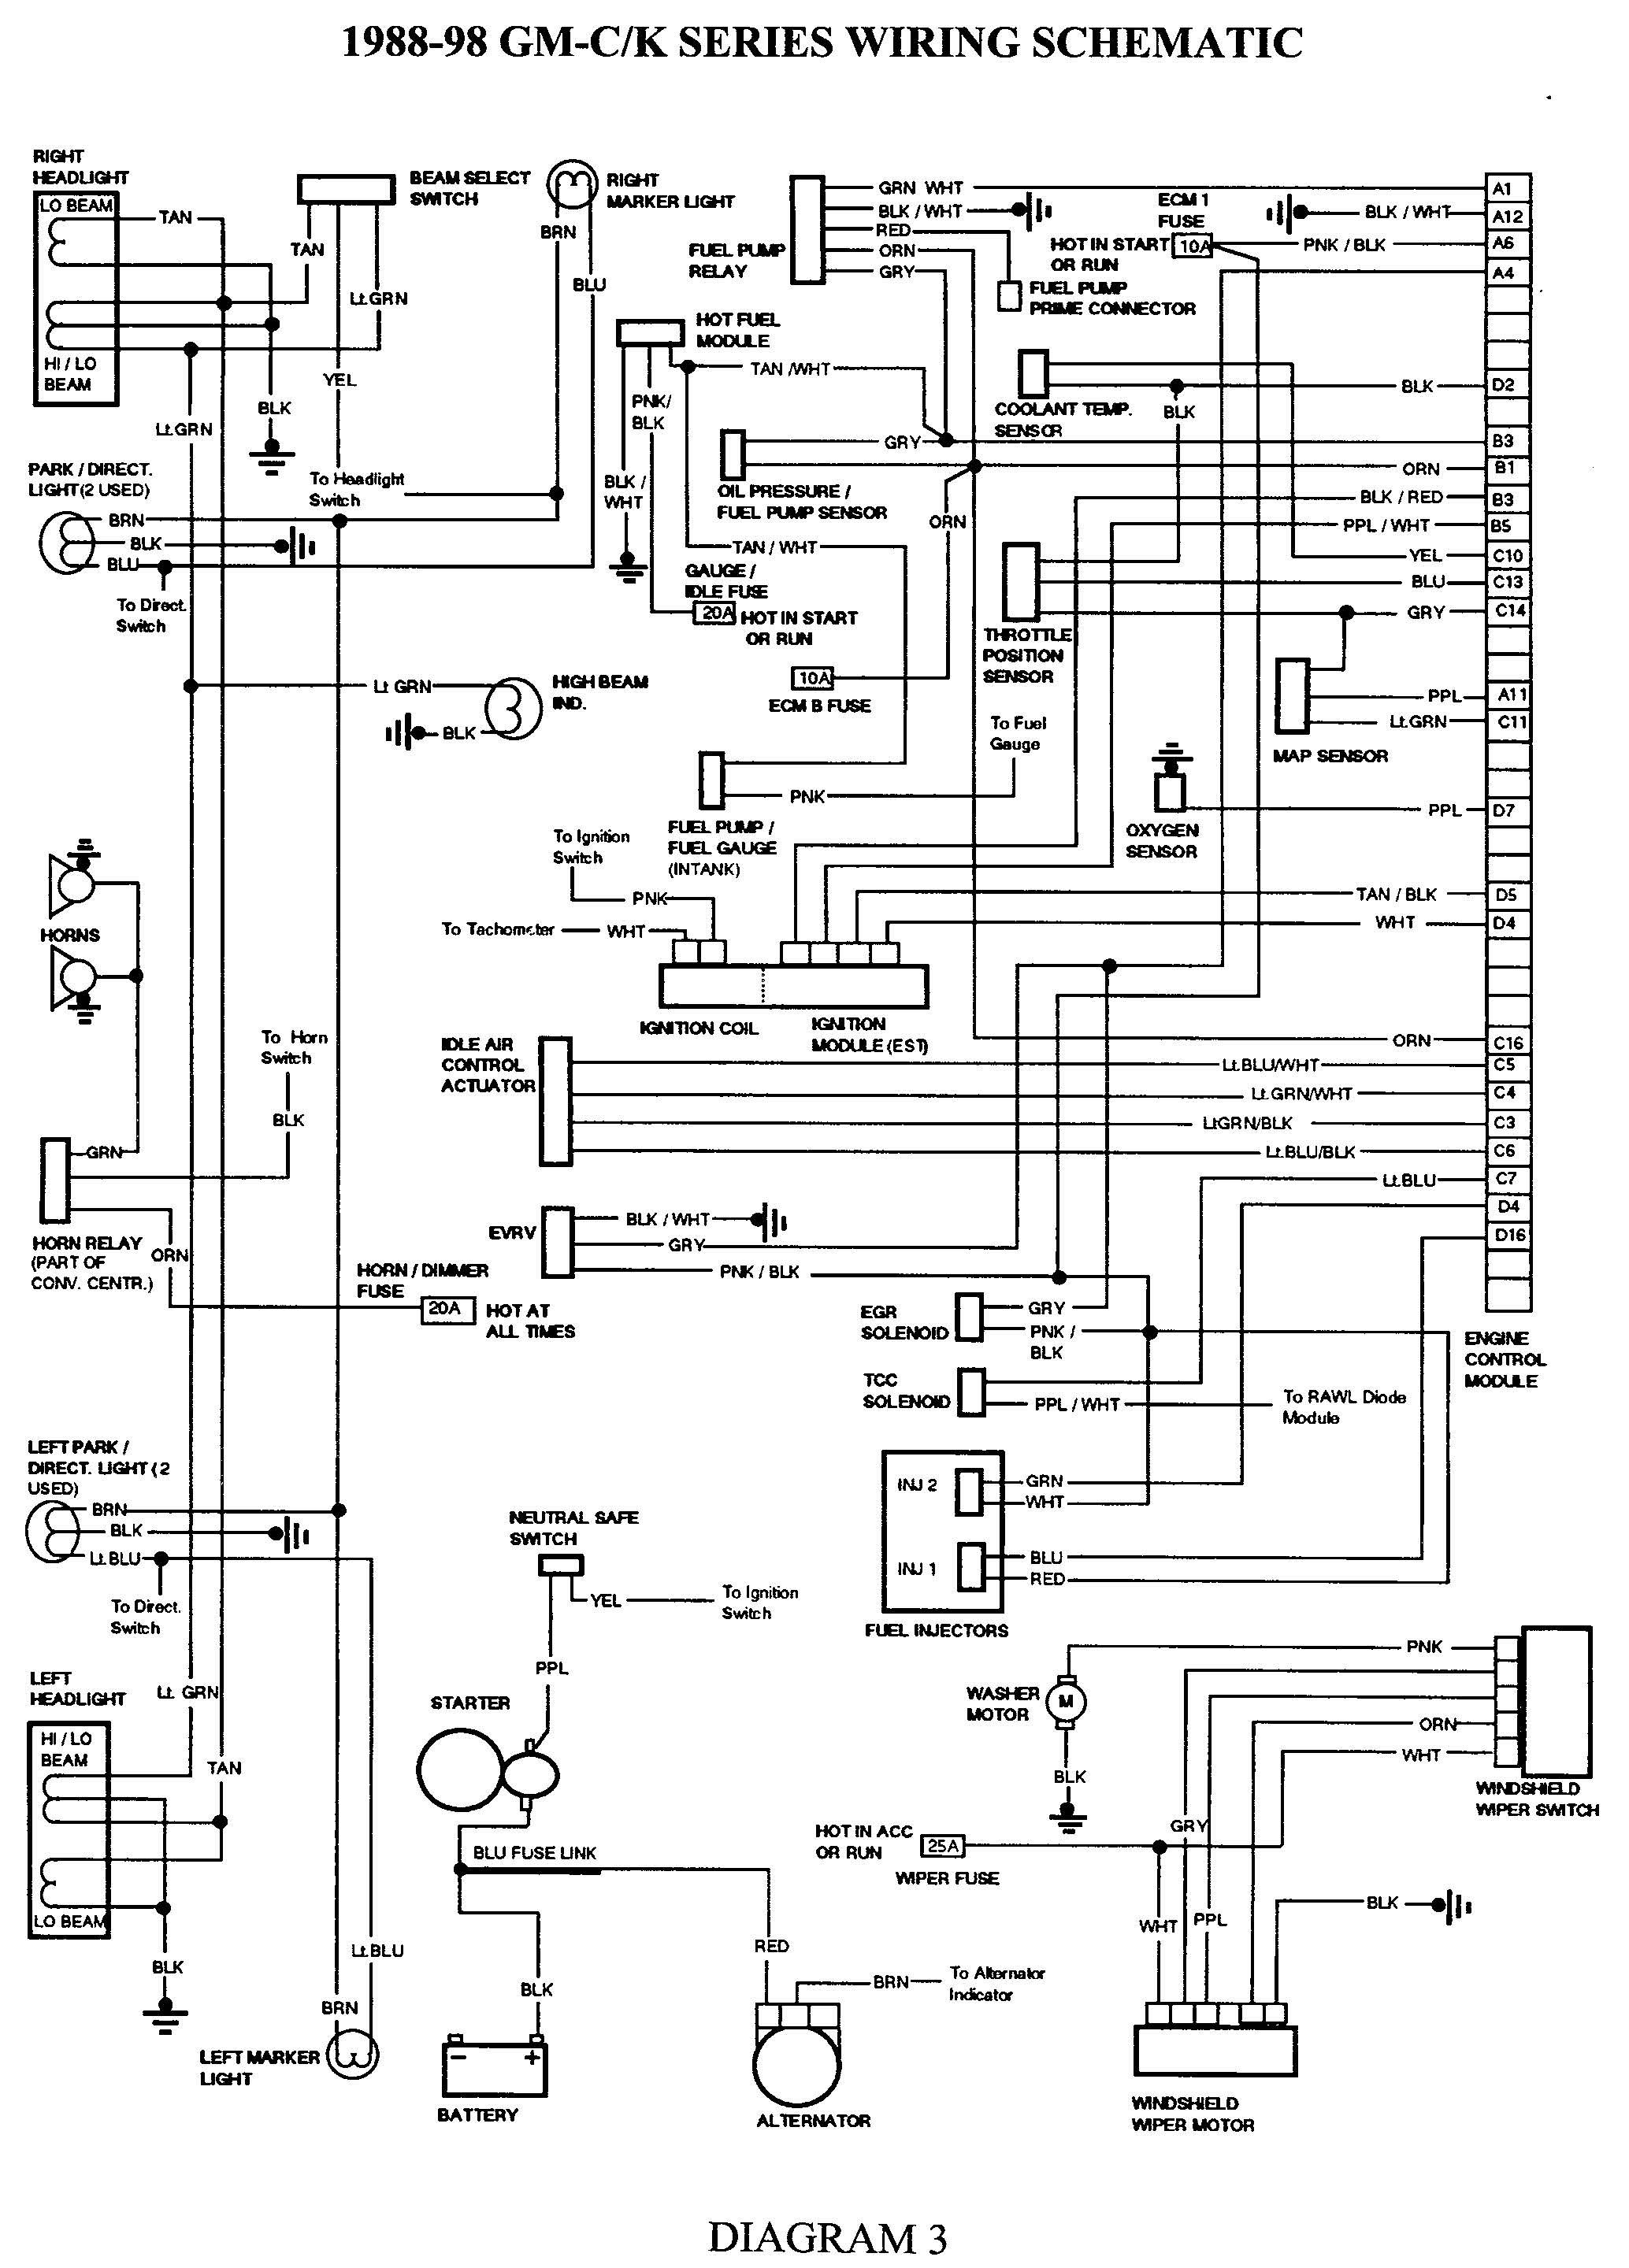 Wiring Diagram 1986 Chevrolet Silverado C 10 Worksheet And 2005 Engine C10 5 7 V8 1500 Rh Pinterest Com